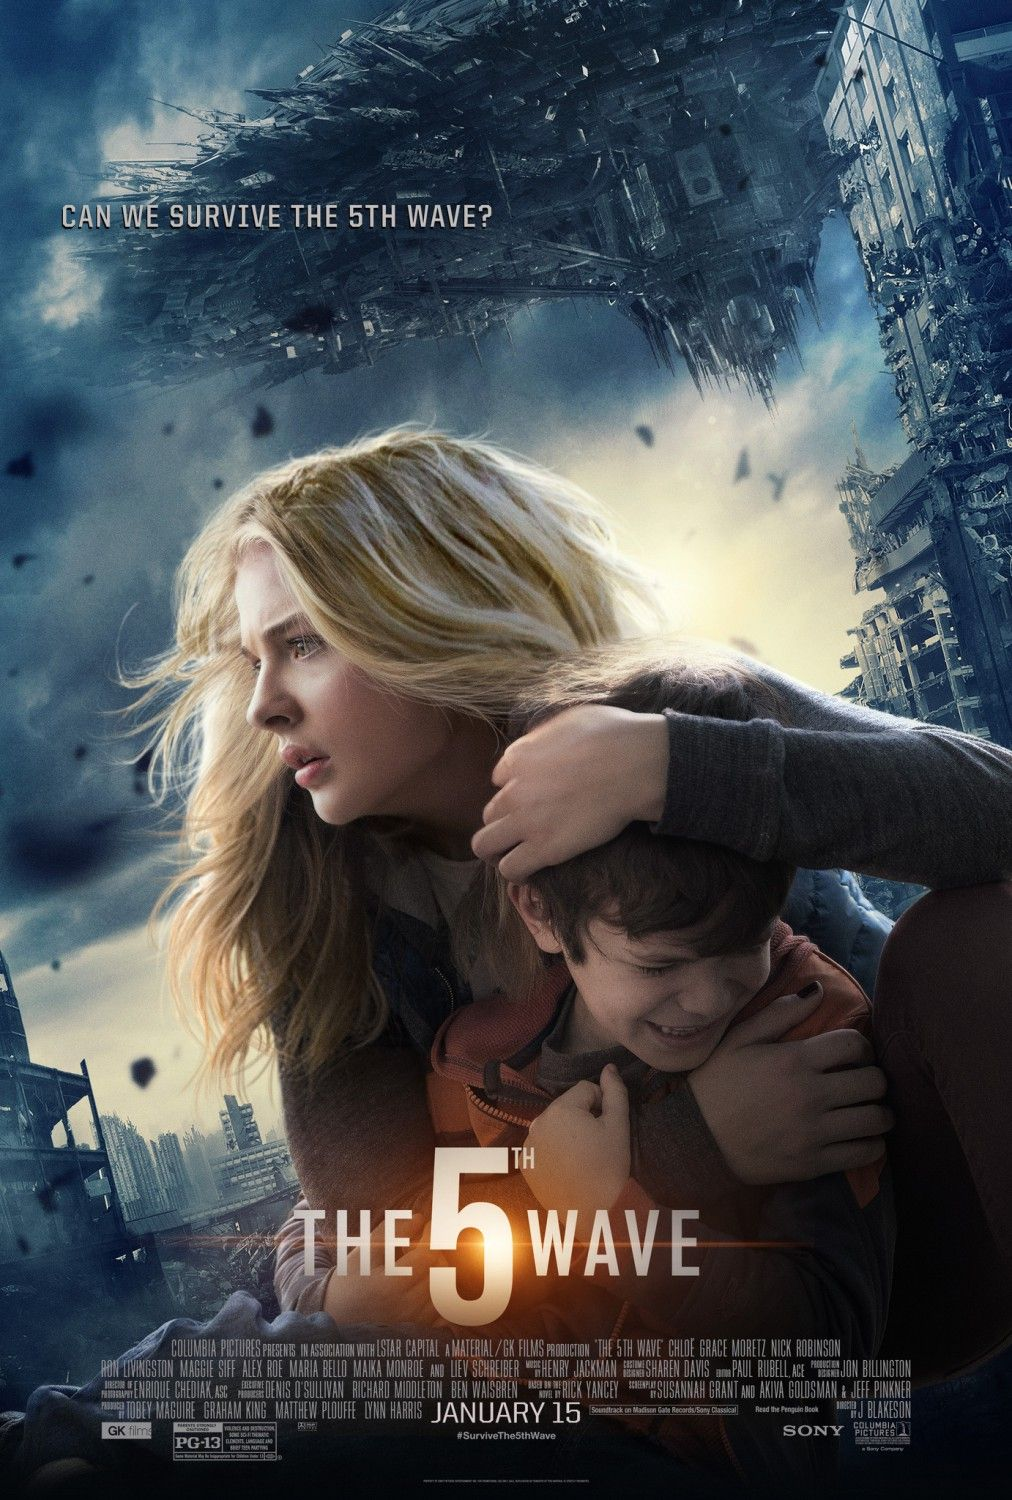 The 5th Wave Omigoodness I Read This Book And Loved It